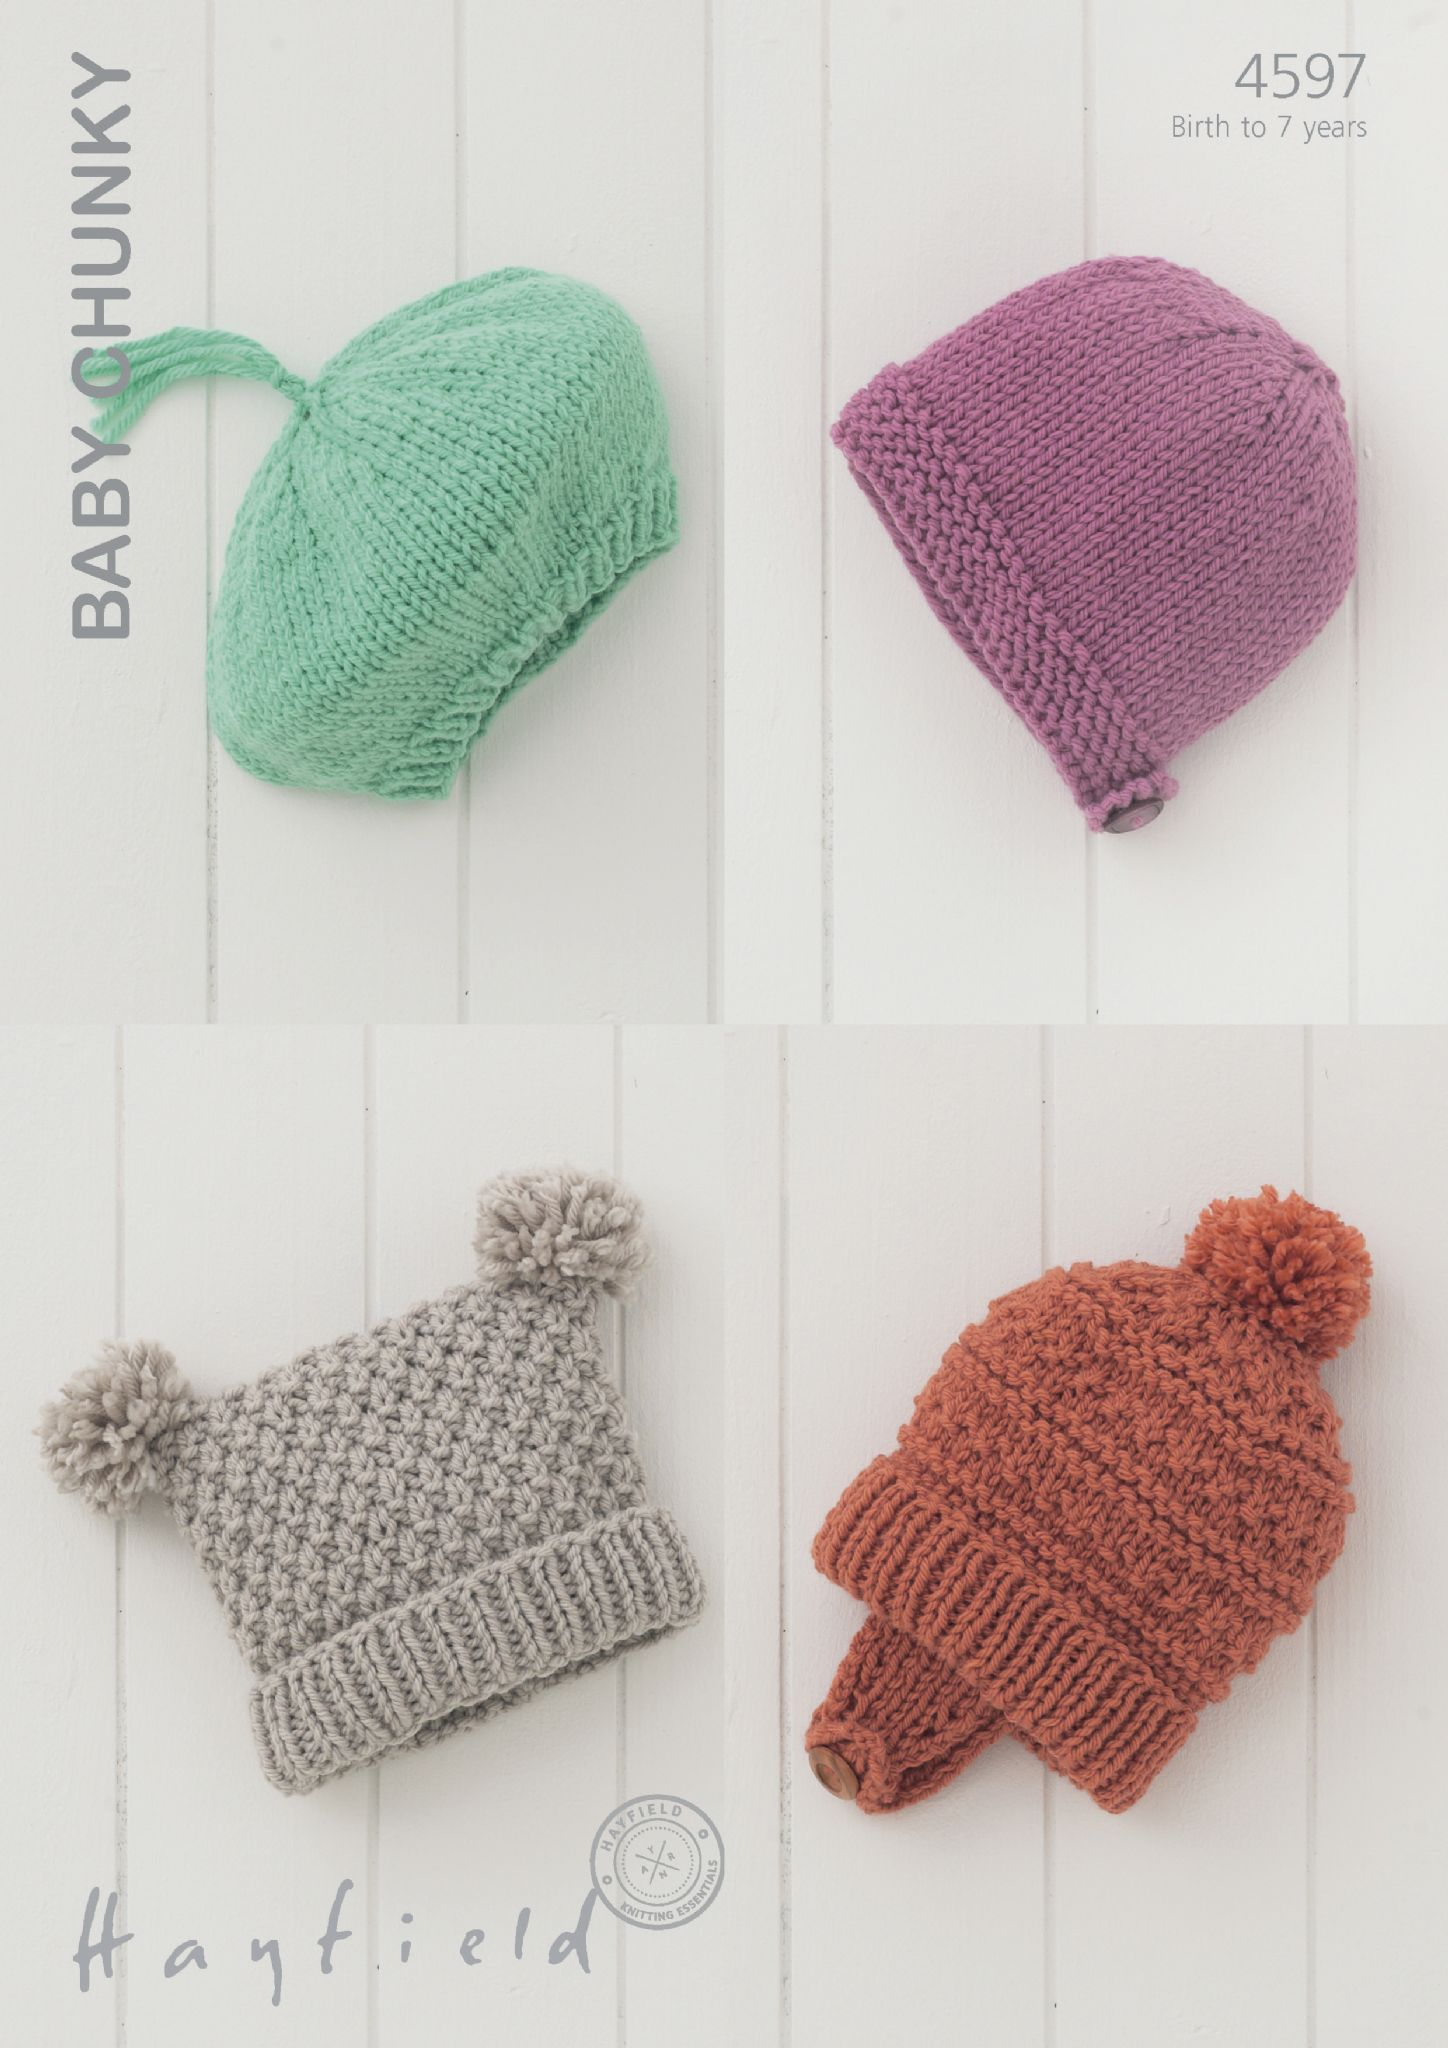 4597 - HAYFIELD BABY CHUNKY BERET HELMET TEA BAG HAT KNITTING ...